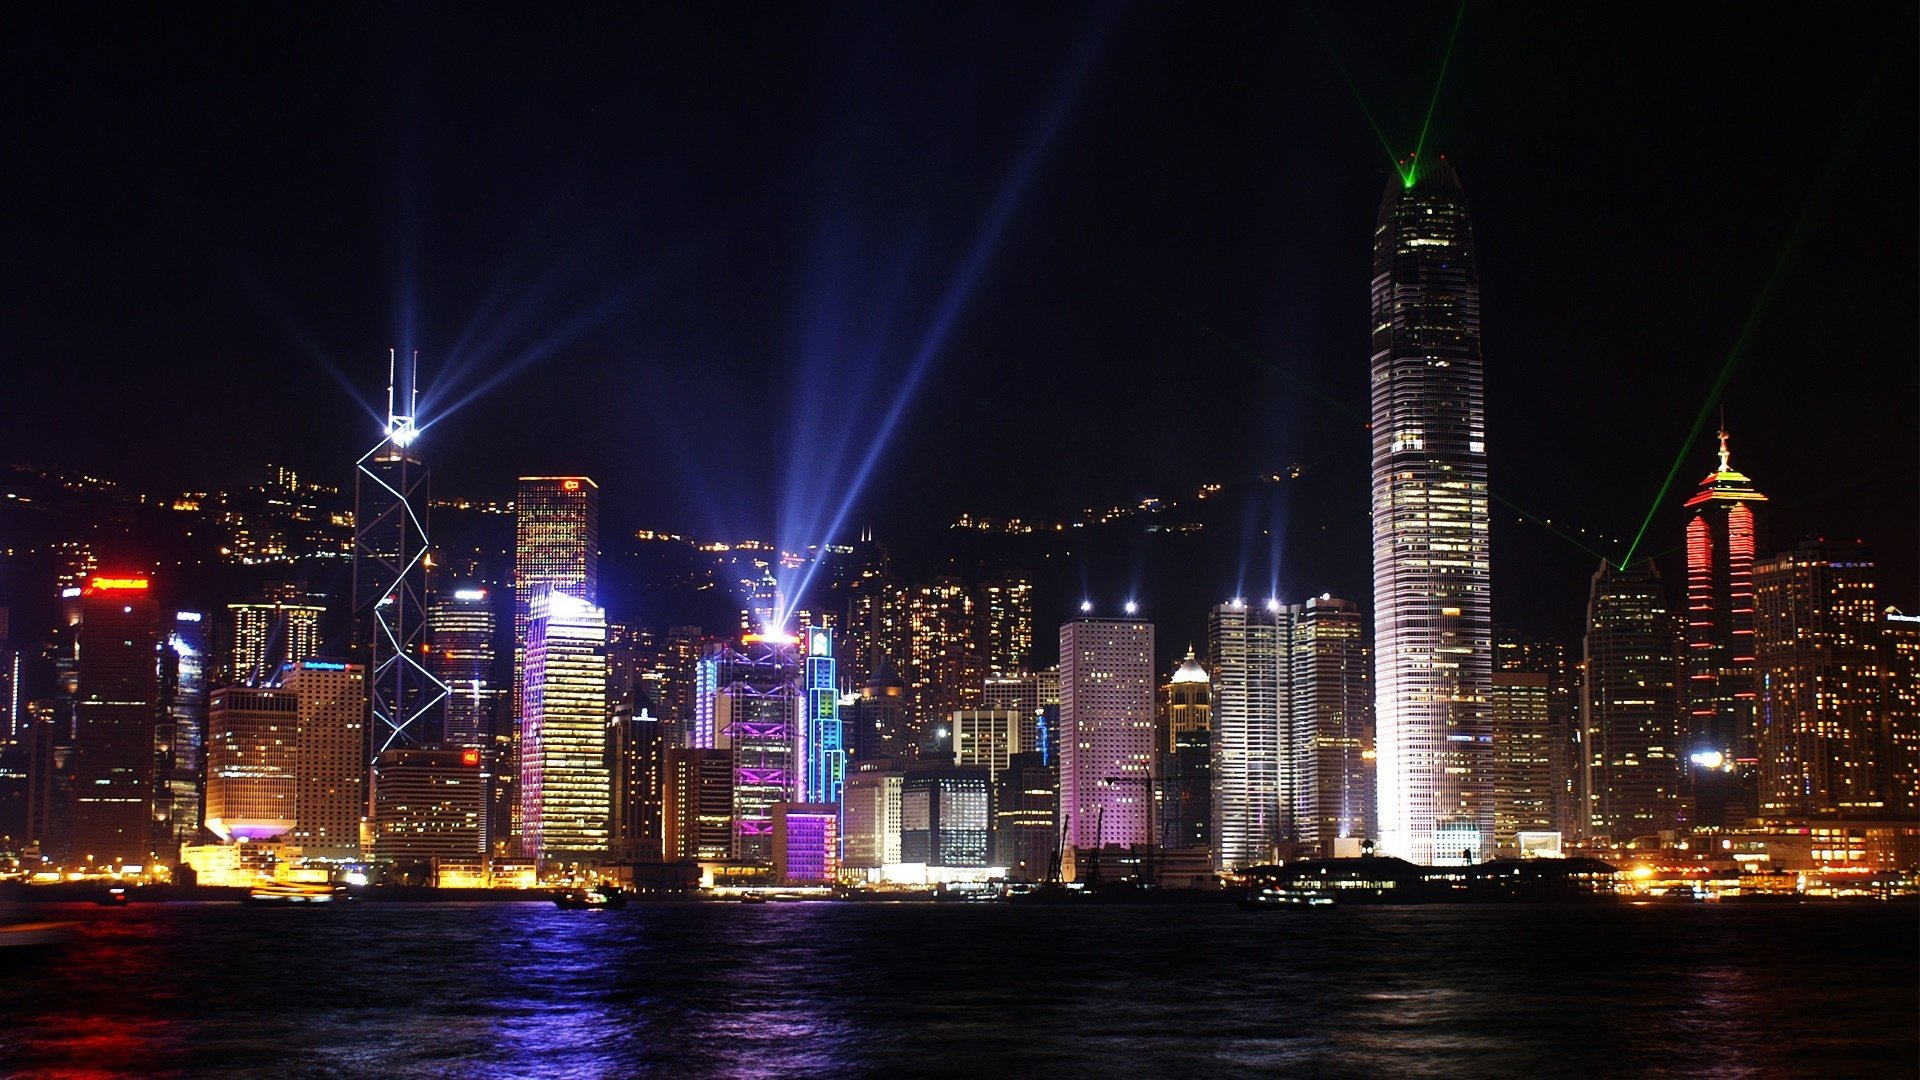 4k-ultra-hd-wallpaper-Hong-Kong-unabuenaidea.es (10)